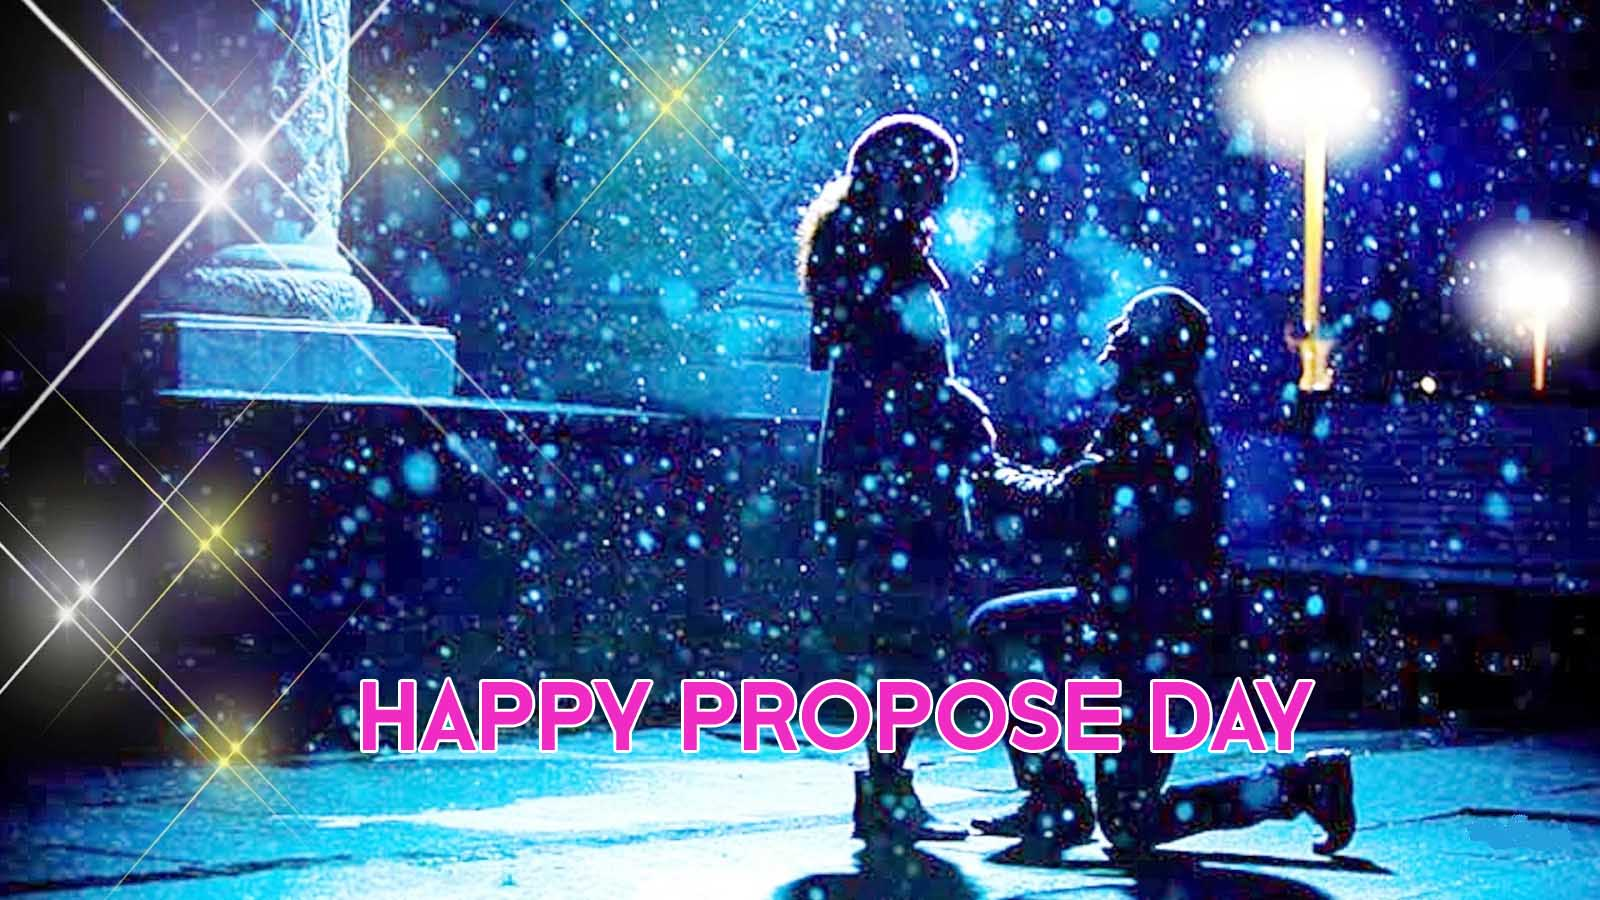 Propose Day Pic Download